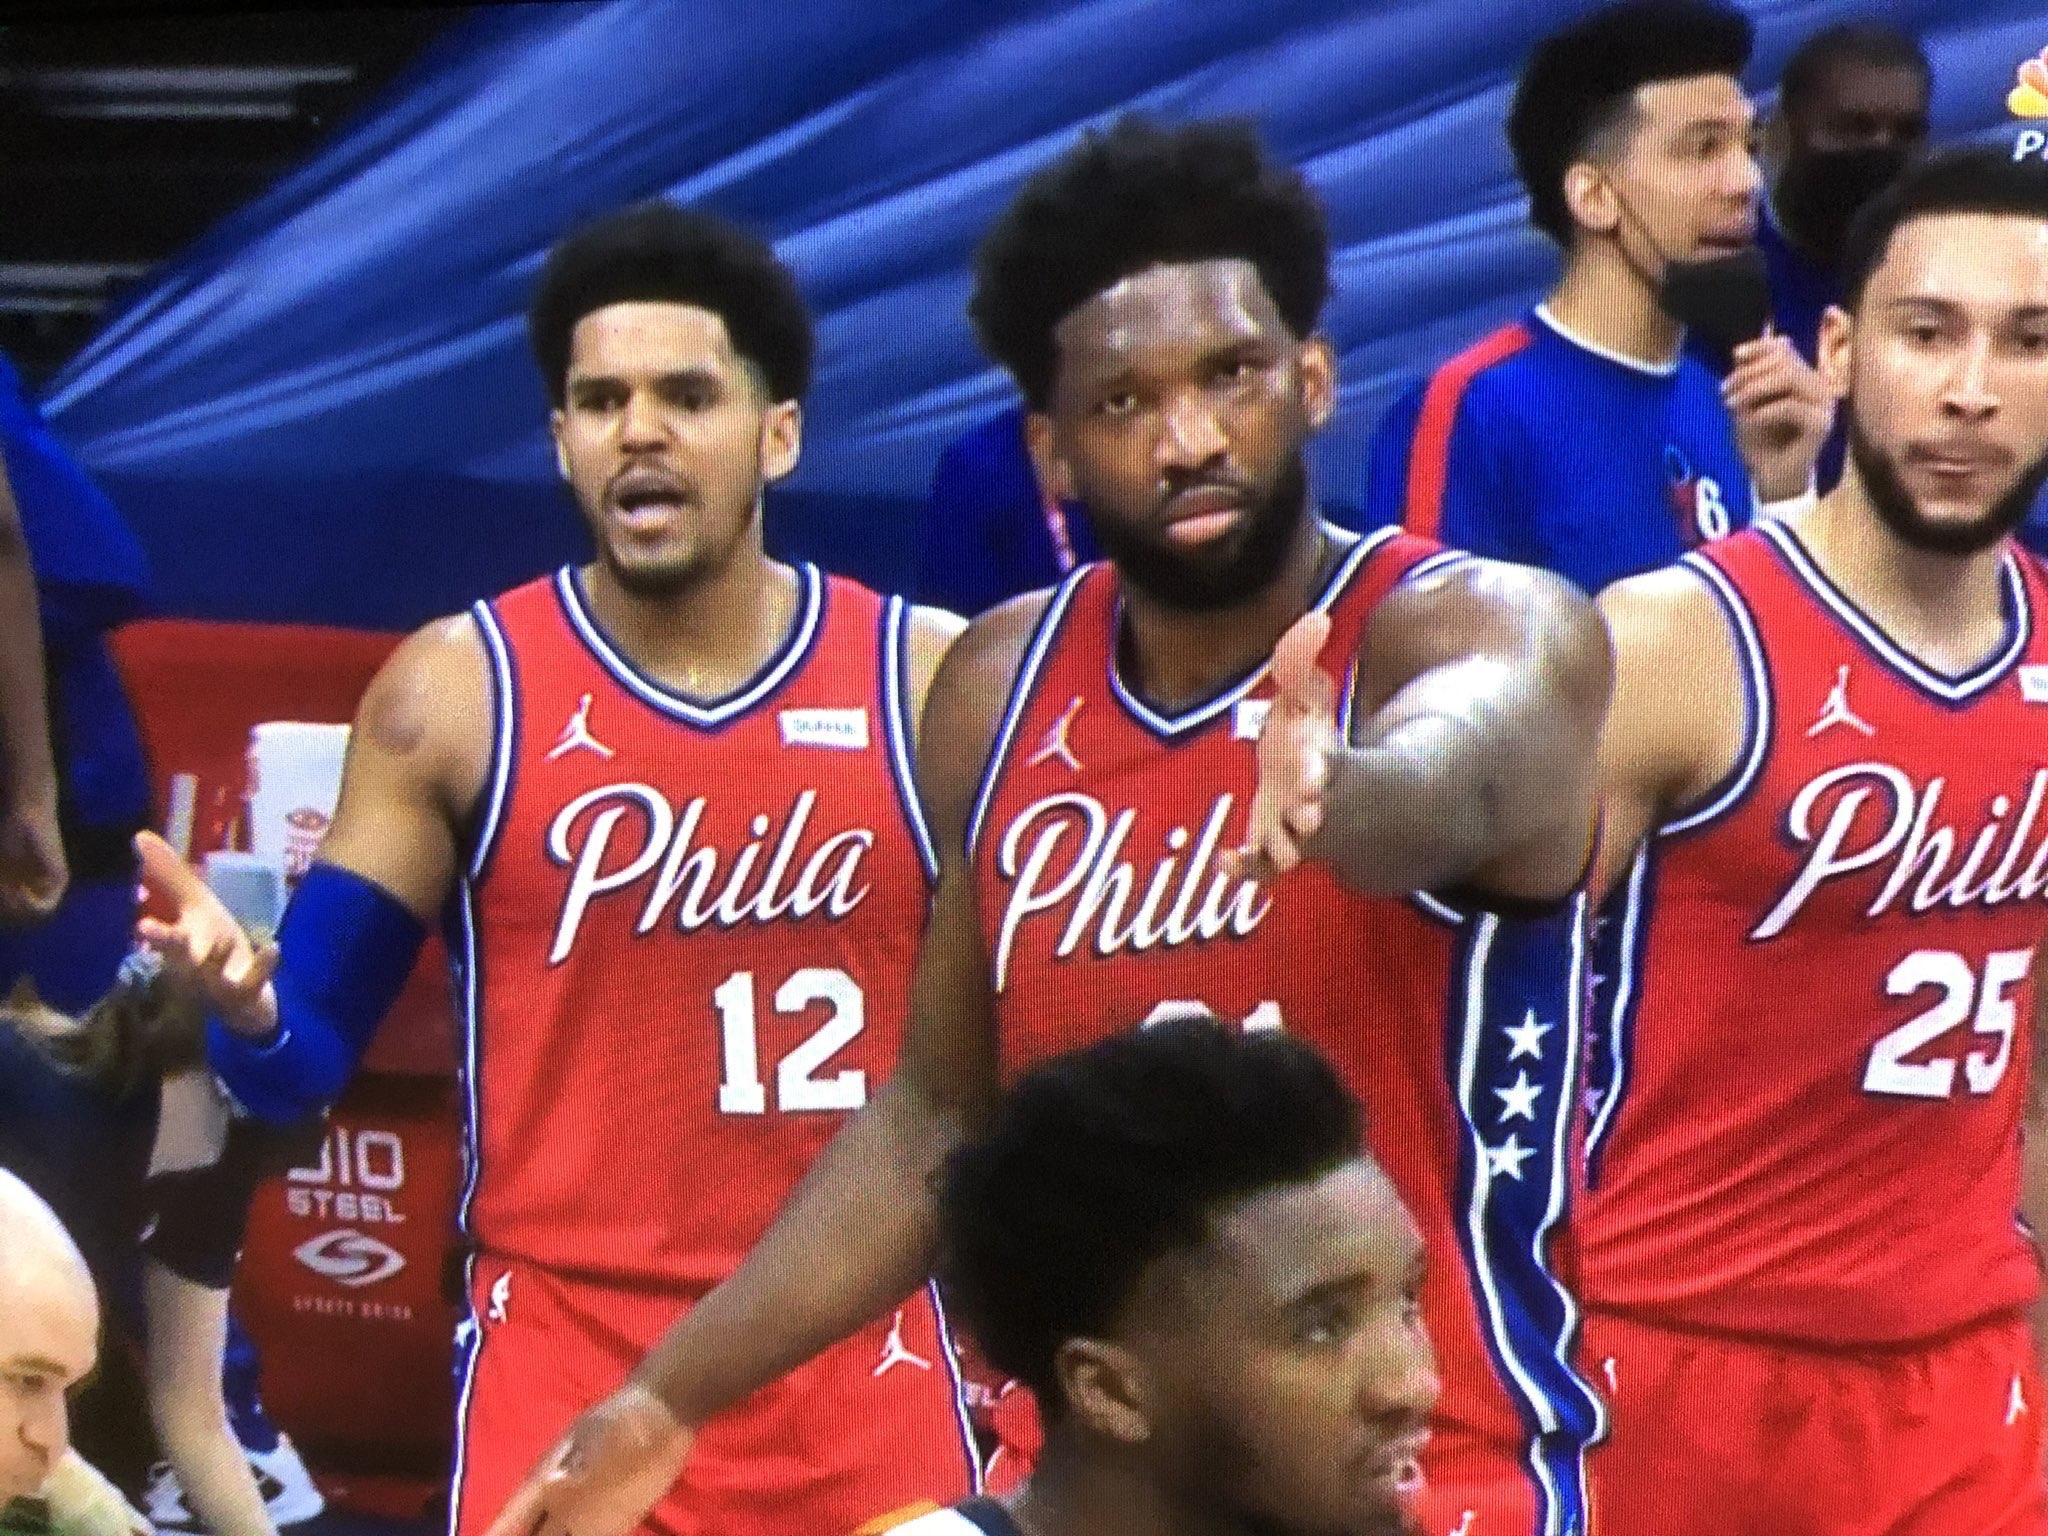 Video: Donovan Mitchell Whines Like A Baby About The Refs Following Loss To The Sixers